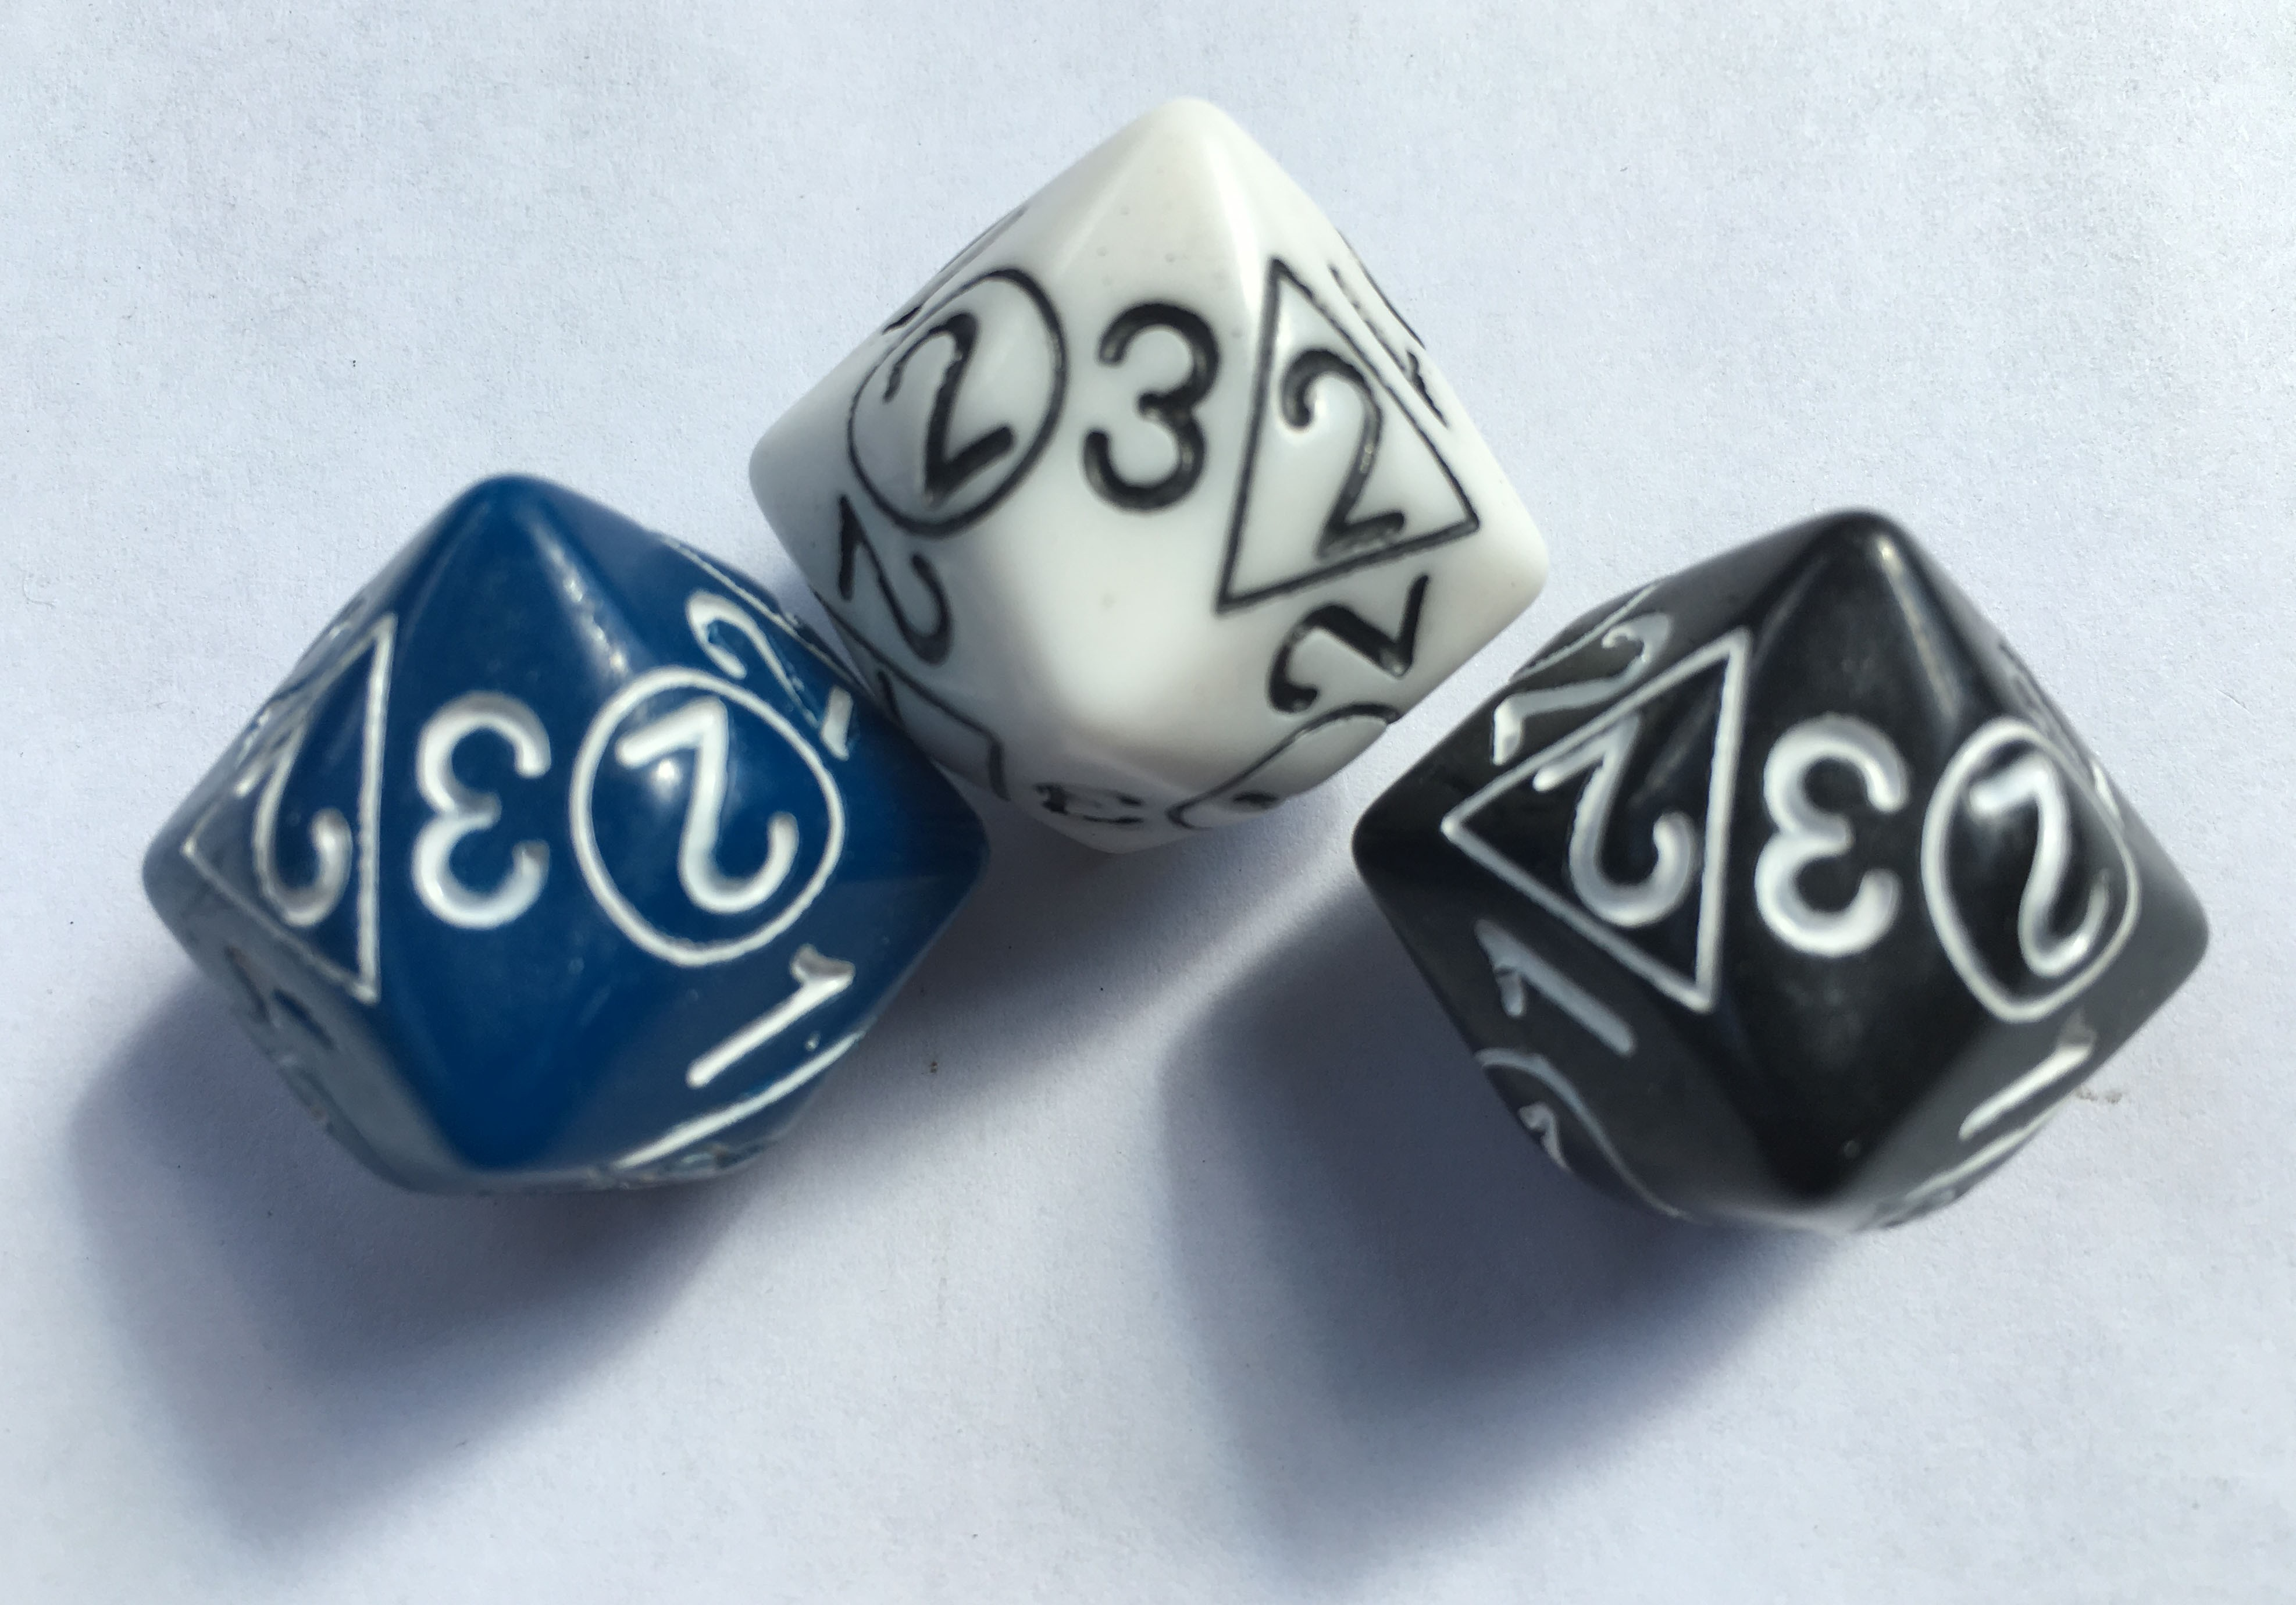 d2/3/4 MultiDice (Set of 3)